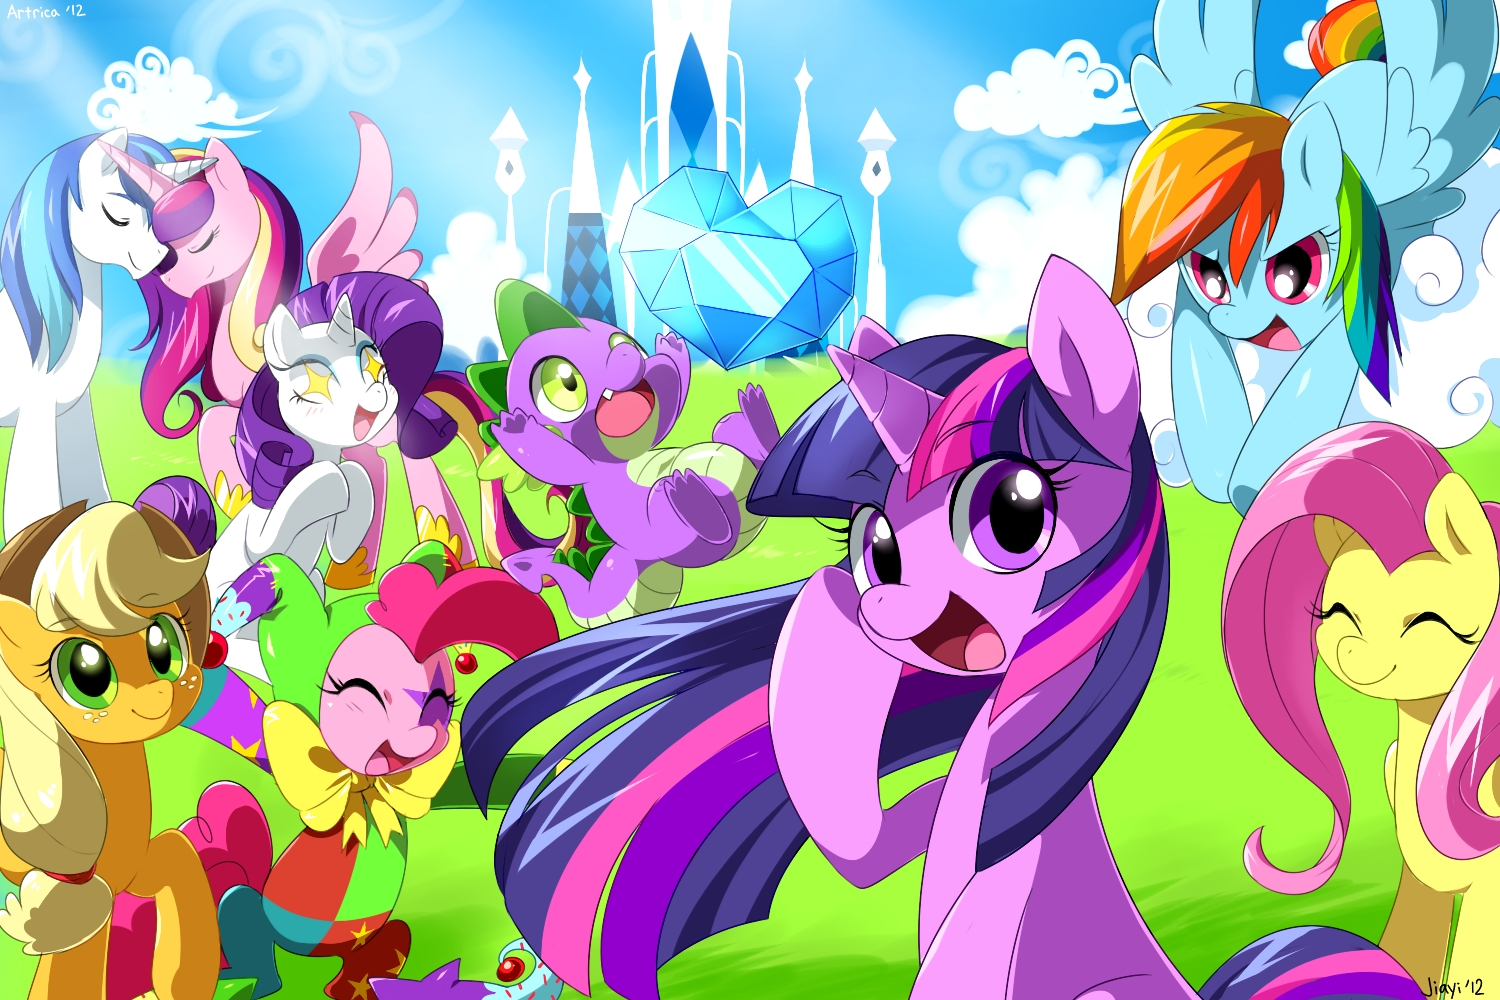 My Little Pony Friendship Is Magic Cartoon Hd Wallpaper My Little Pony Anime 21587 Hd Wallpaper Backgrounds Download